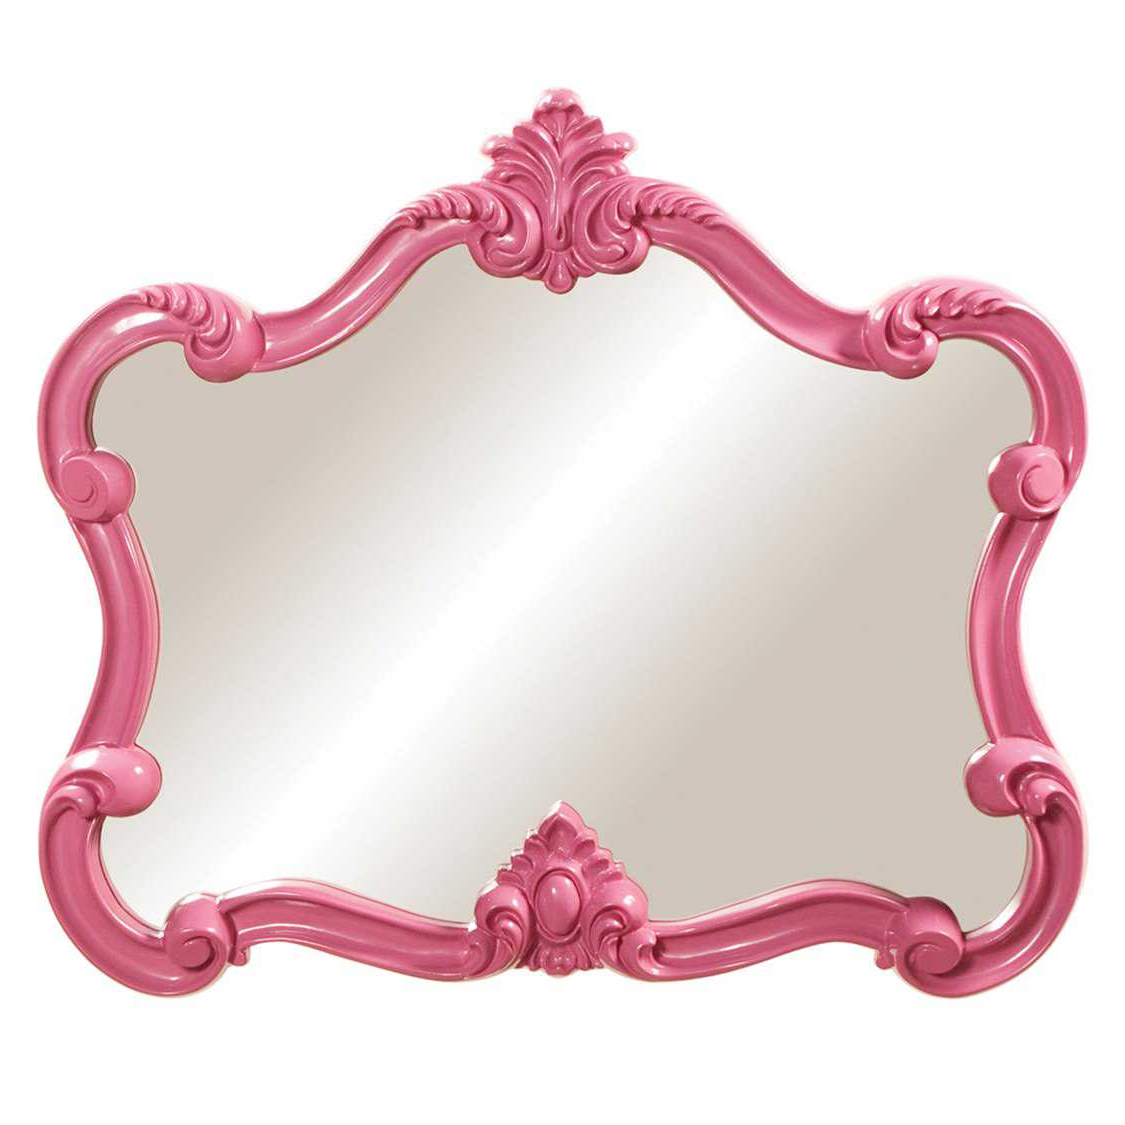 Pink Wall Mirrors In Most Up To Date Howard Elliott Veruca 32 X 28 Pink Wall Mirror (View 9 of 20)